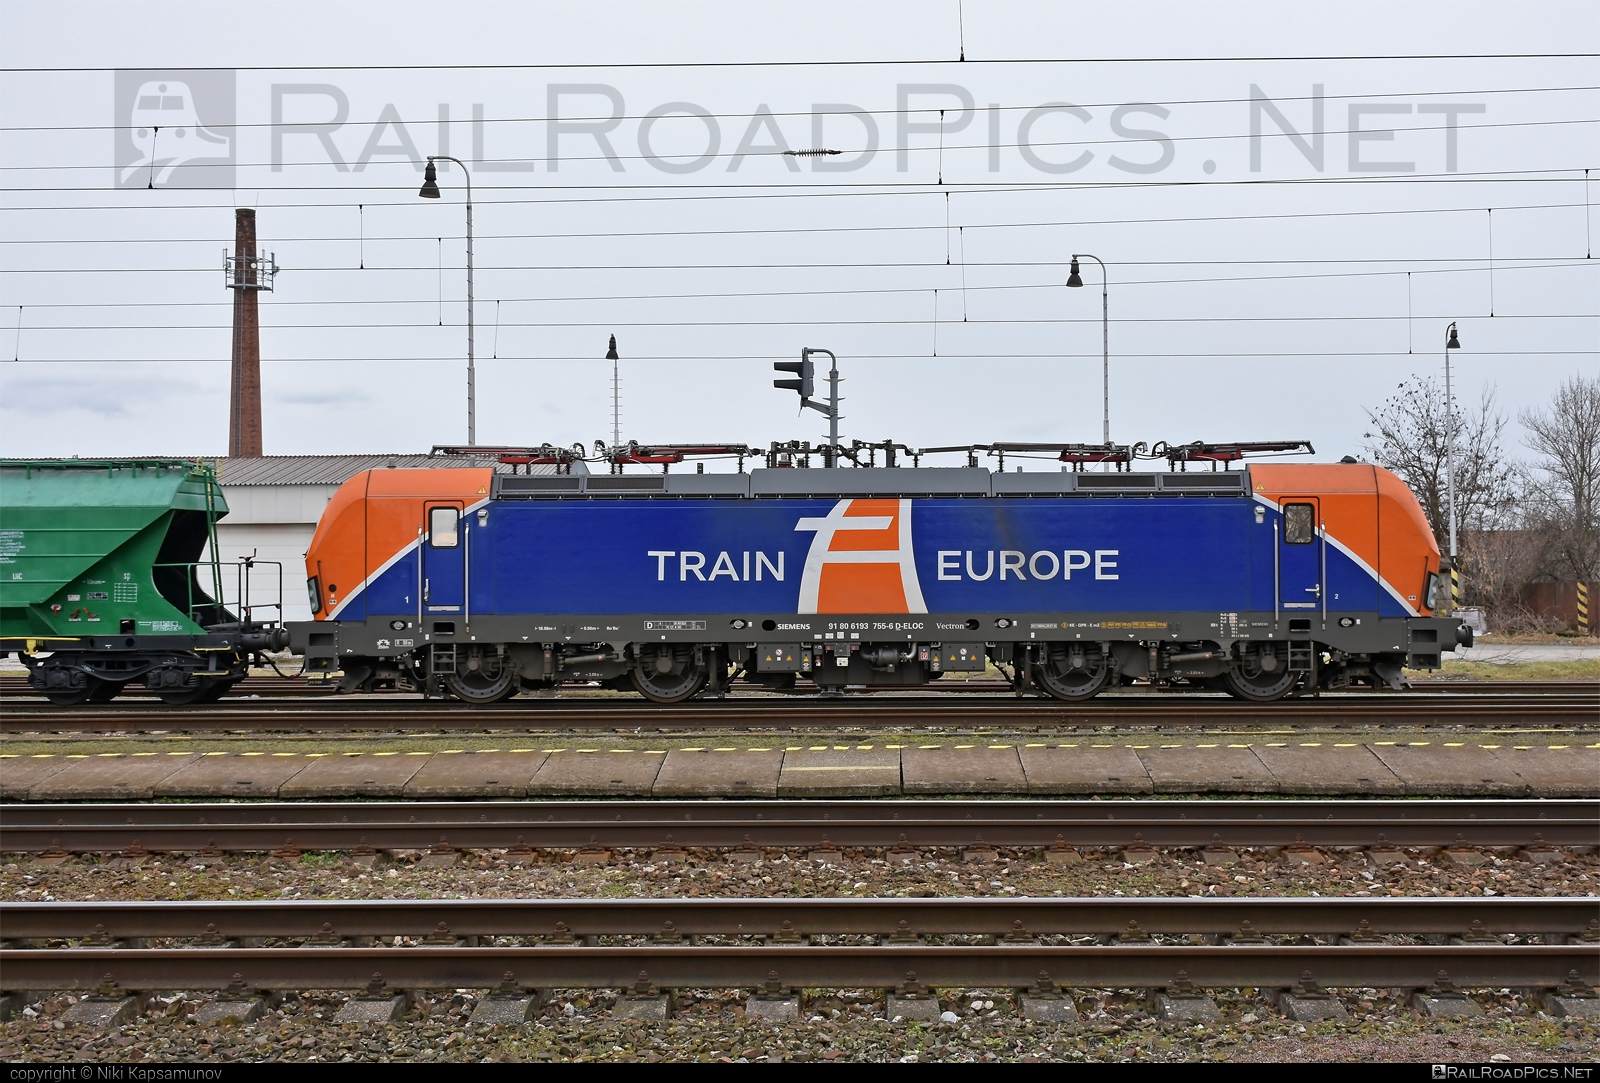 Siemens Vectron MS - 193 755 operated by LOKORAIL, a.s. #ell #ellgermany #eloc #europeanlocomotiveleasing #lokorail #lrl #siemens #siemensvectron #siemensvectronms #traineurope #vectron #vectronms